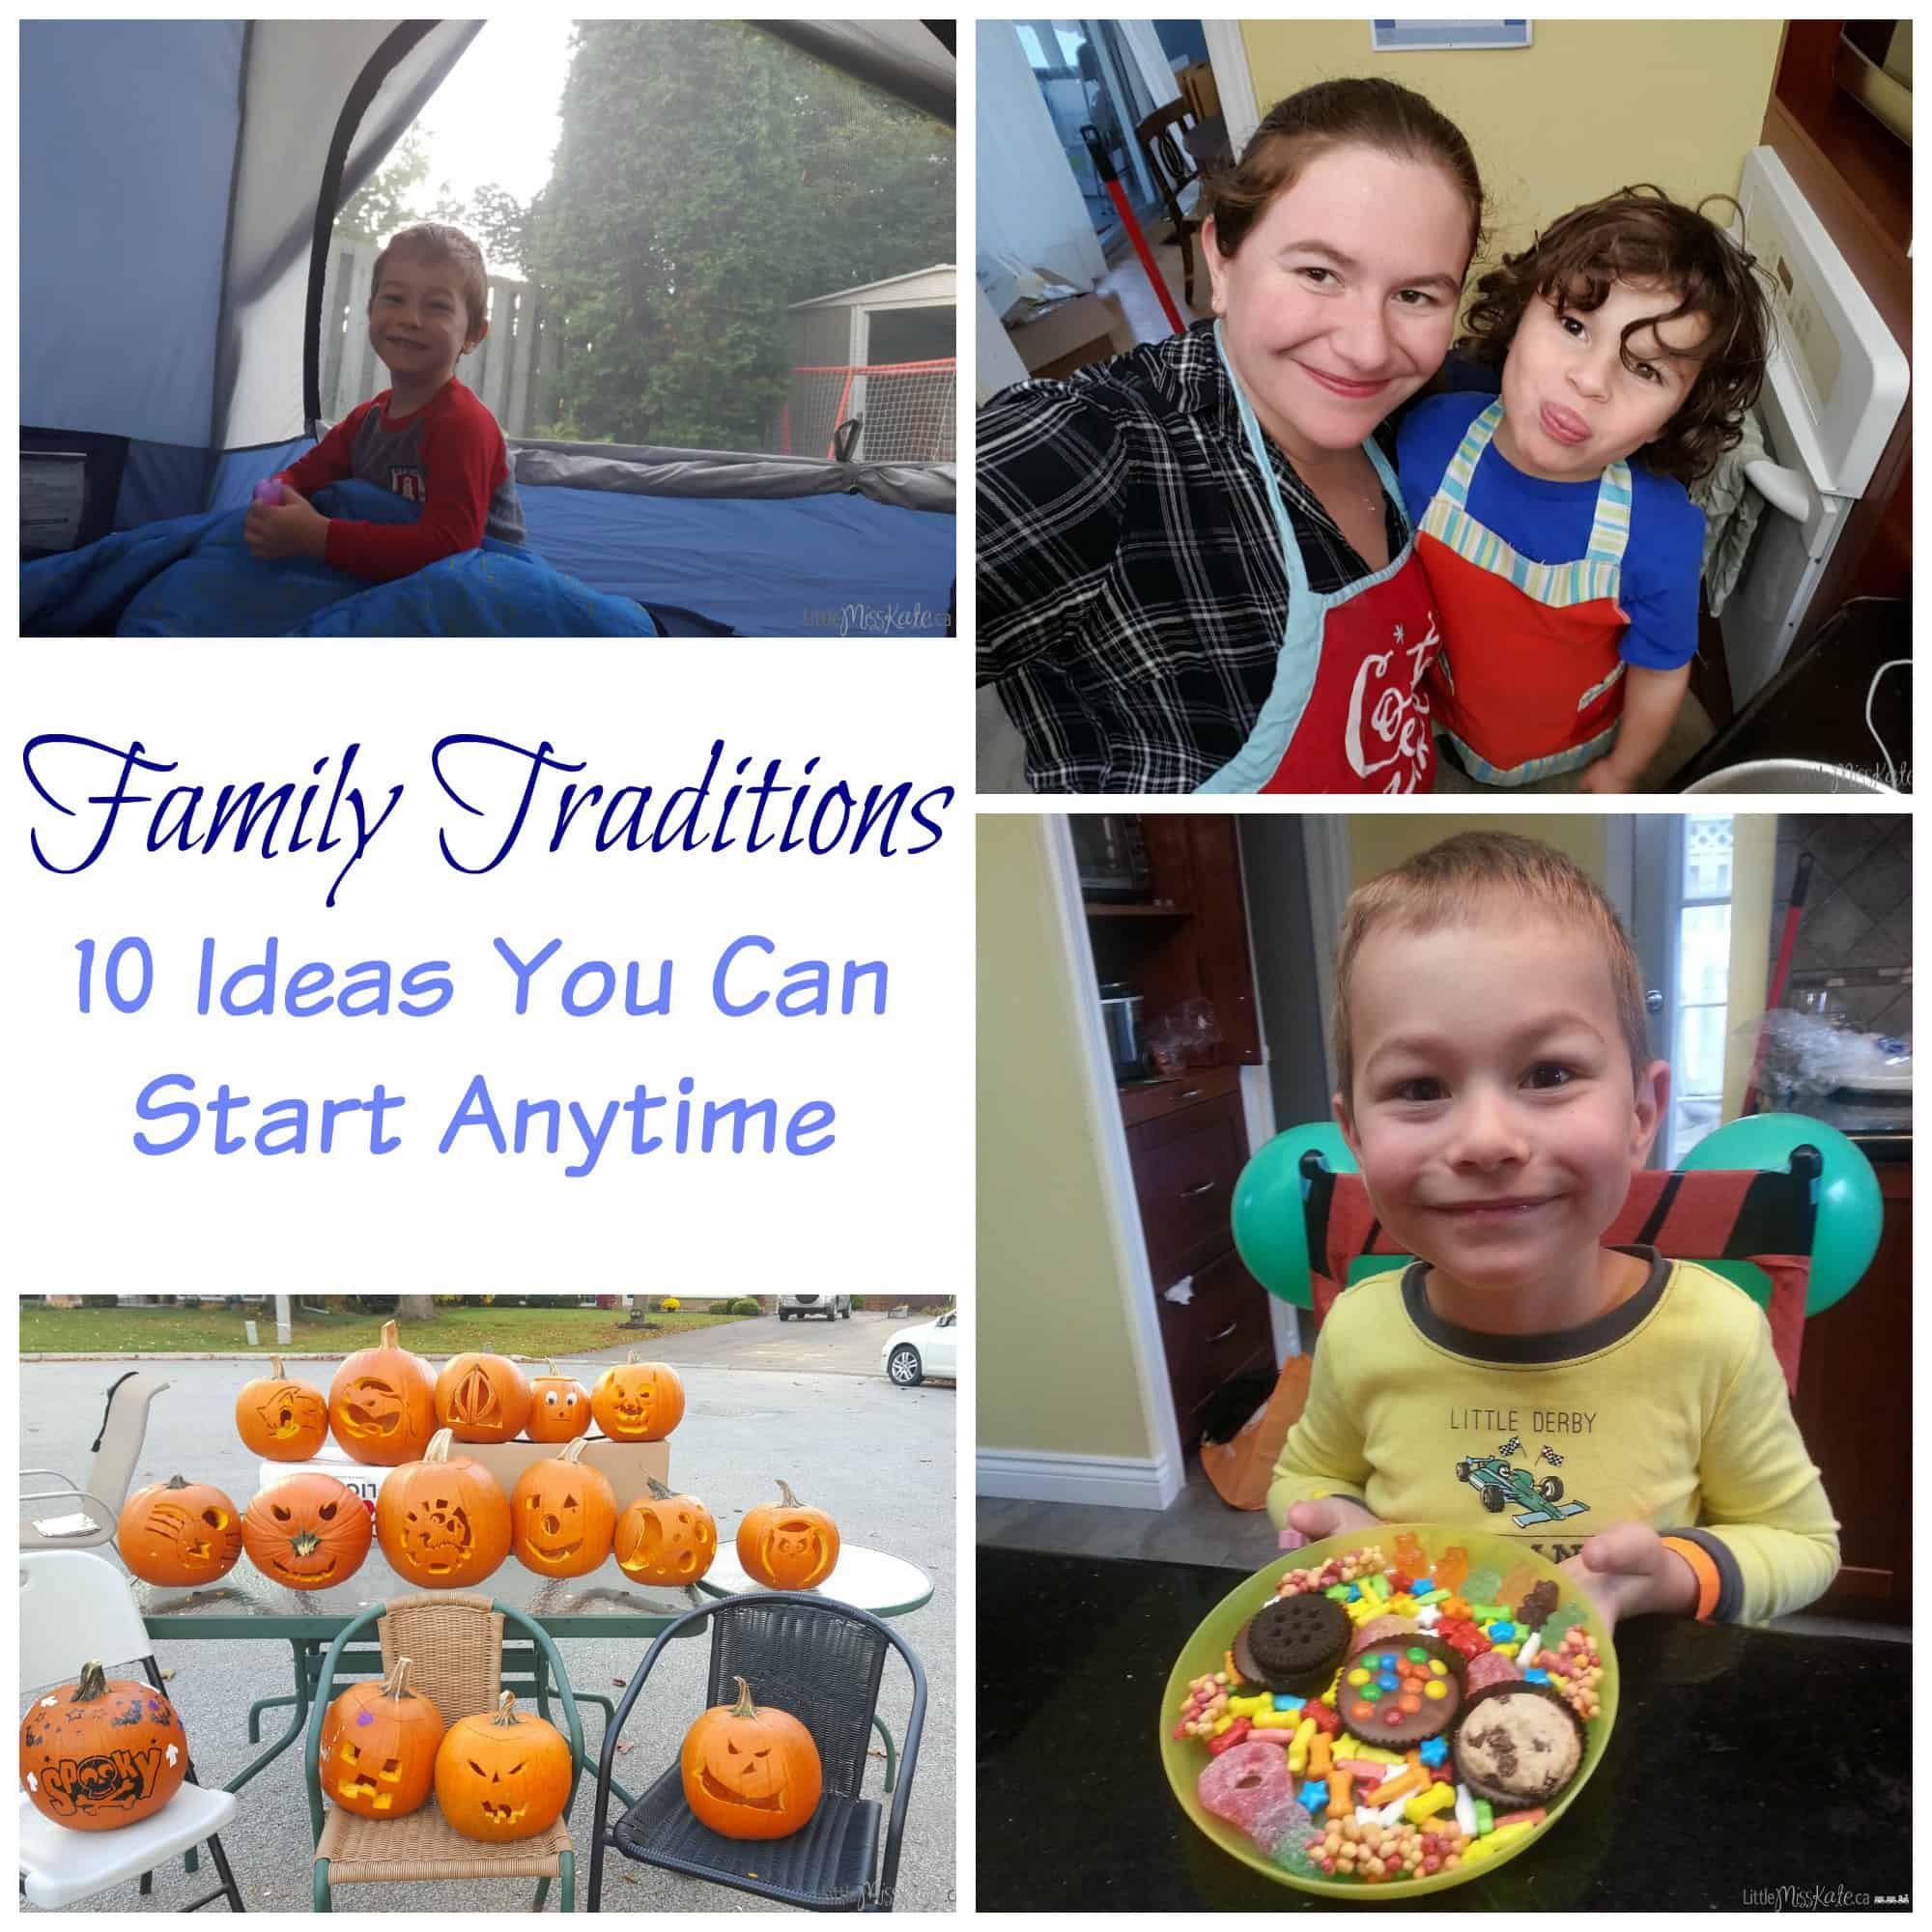 Family Traditions: 10 Ideas You Can Start Anytime via LittleMissKate.ca